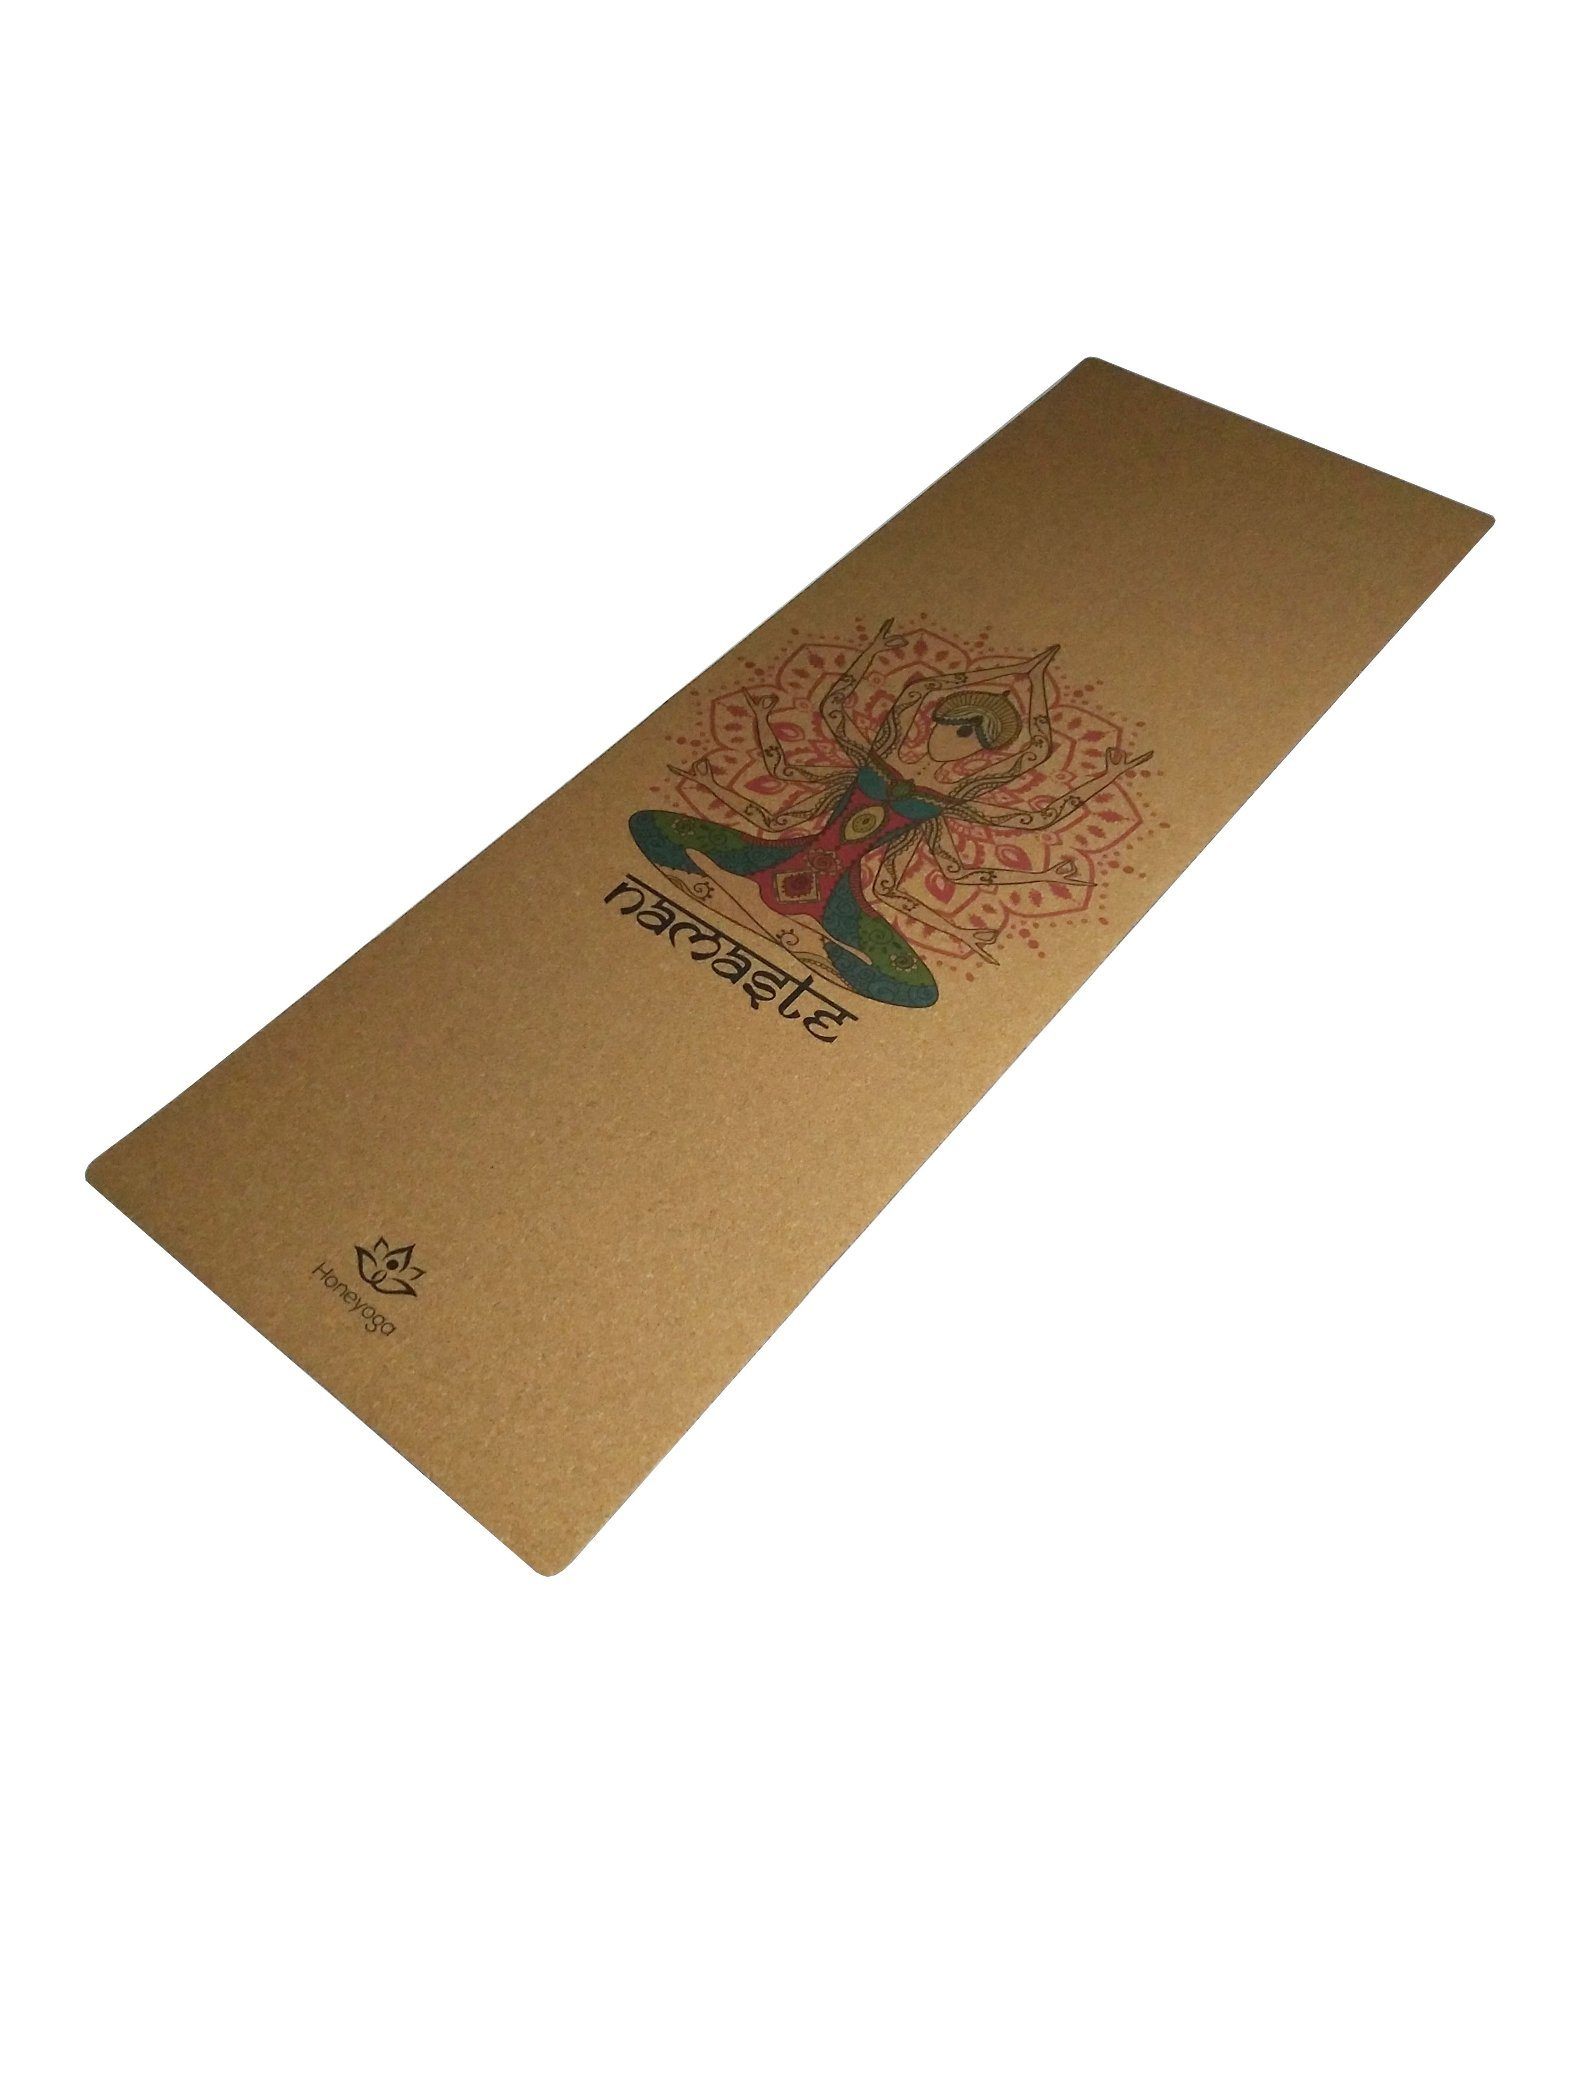 Travel Cork Yoga Mat + Natural Rubber Portable Light Ultimate Non-Slip Yoga Mats